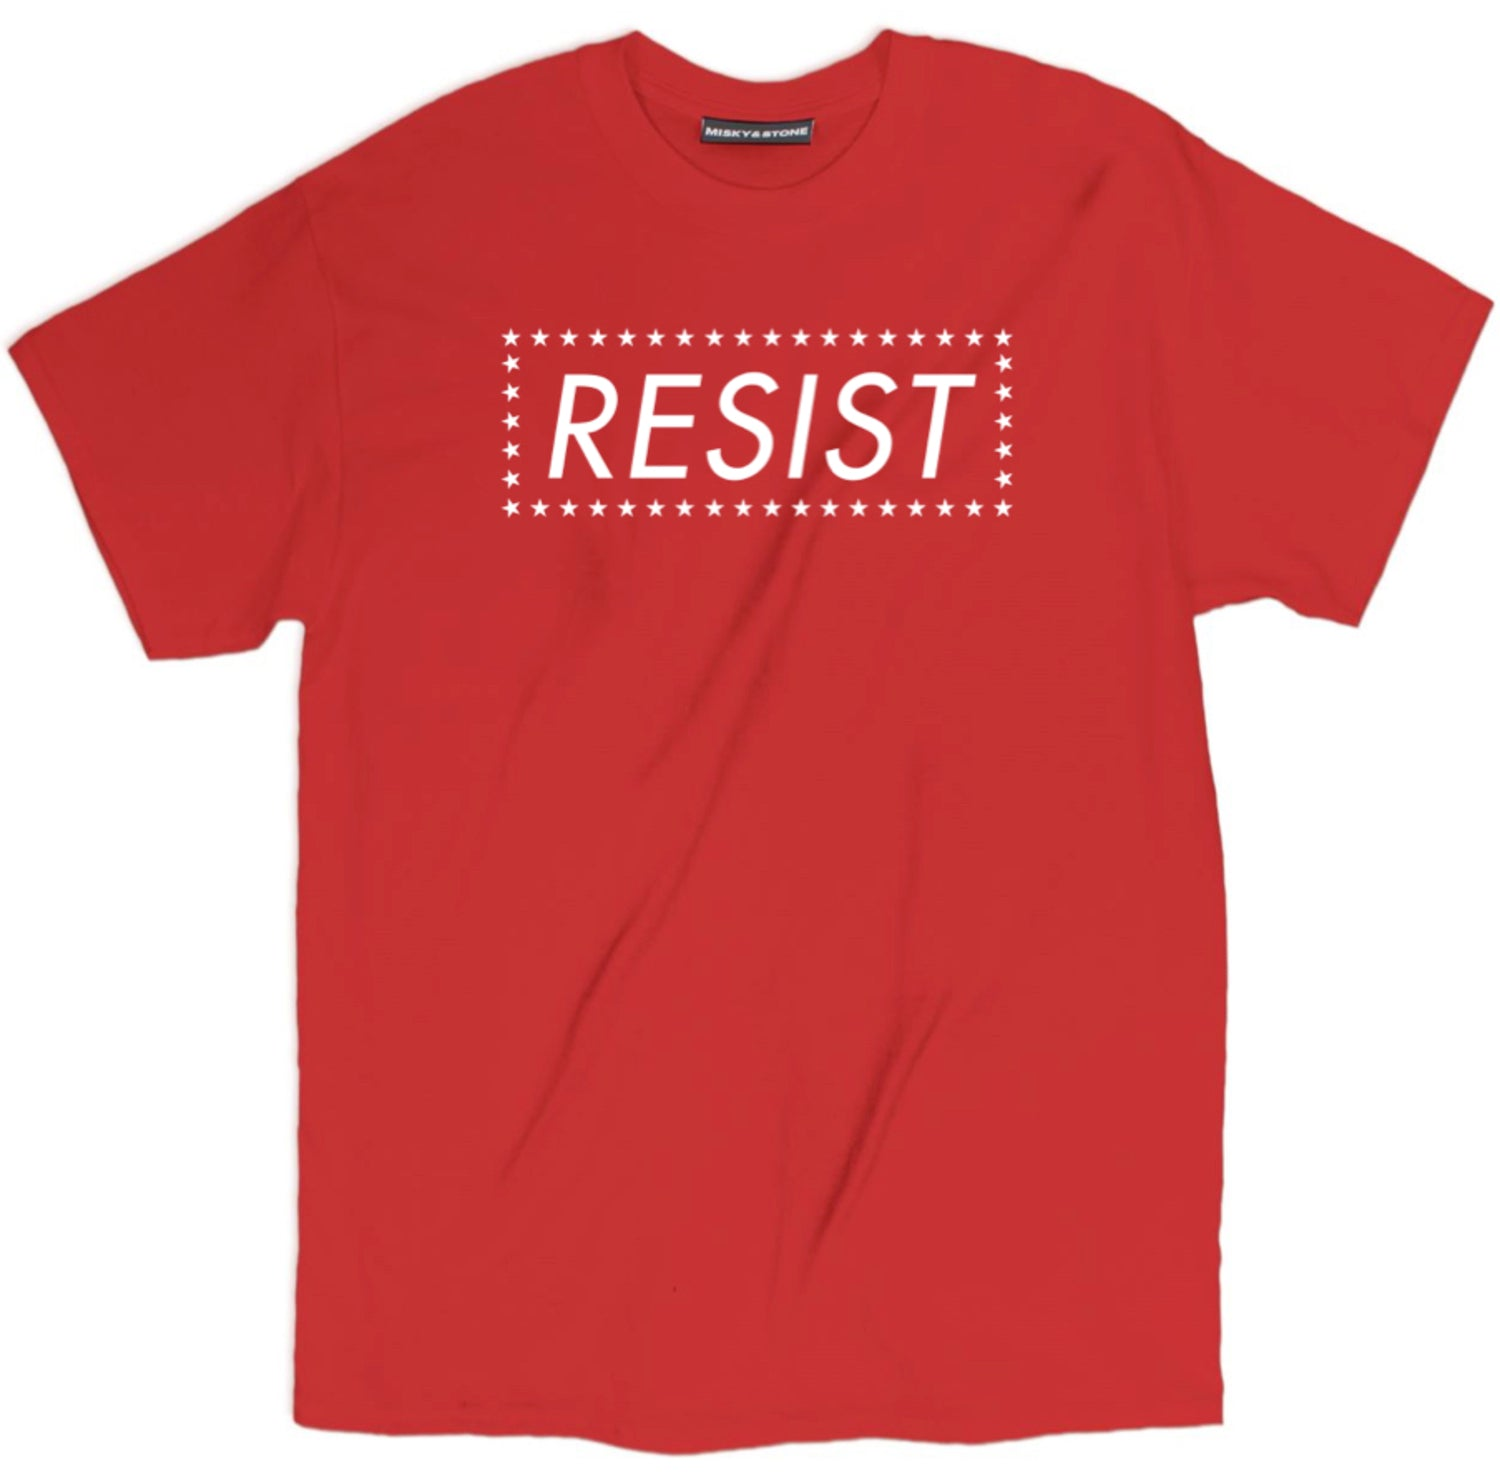 Resist Star Boarder Tee, RESIST TEE, AGAINST THE GOVERNMRNT TEE, trump shirts, anti trump shirts, anti trump t shirts, trump t shirt, funny trump shirts, trump merchandise, donald trump shirts, anti donald trump shirts, trump t shirts, funny anti trump tee shirts, funny donald trump shirts, anti trump apparel, anti trump clothing, trump tee shirts, dump trump shirt, anti trump merchandise,